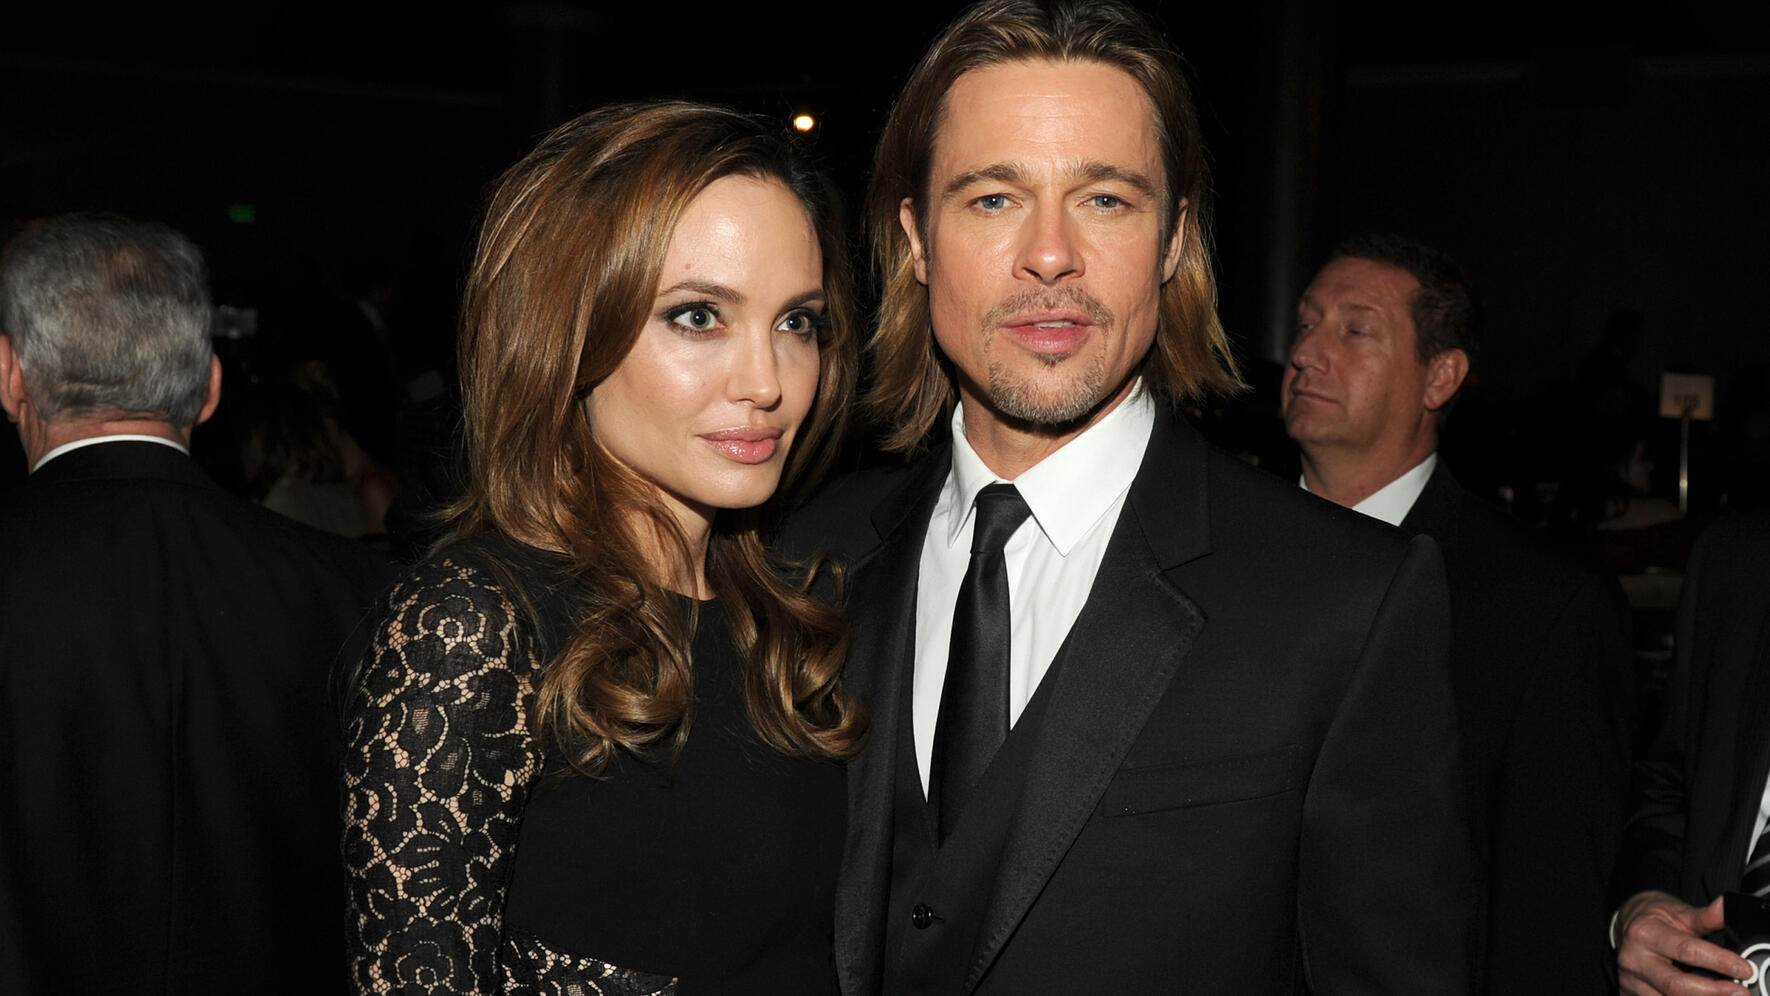 BEVERLY HILLS, CA - JANUARY 21:  Actress/producer Angelina Jolie (L) and actor Brad Pitt attend the 23rd annual Producers Guild Awards at The Beverly Hilton hotel on January 21, 2012 in Beverly Hills, California.  (Photo by Kevin Winter/Getty Images For PGA)